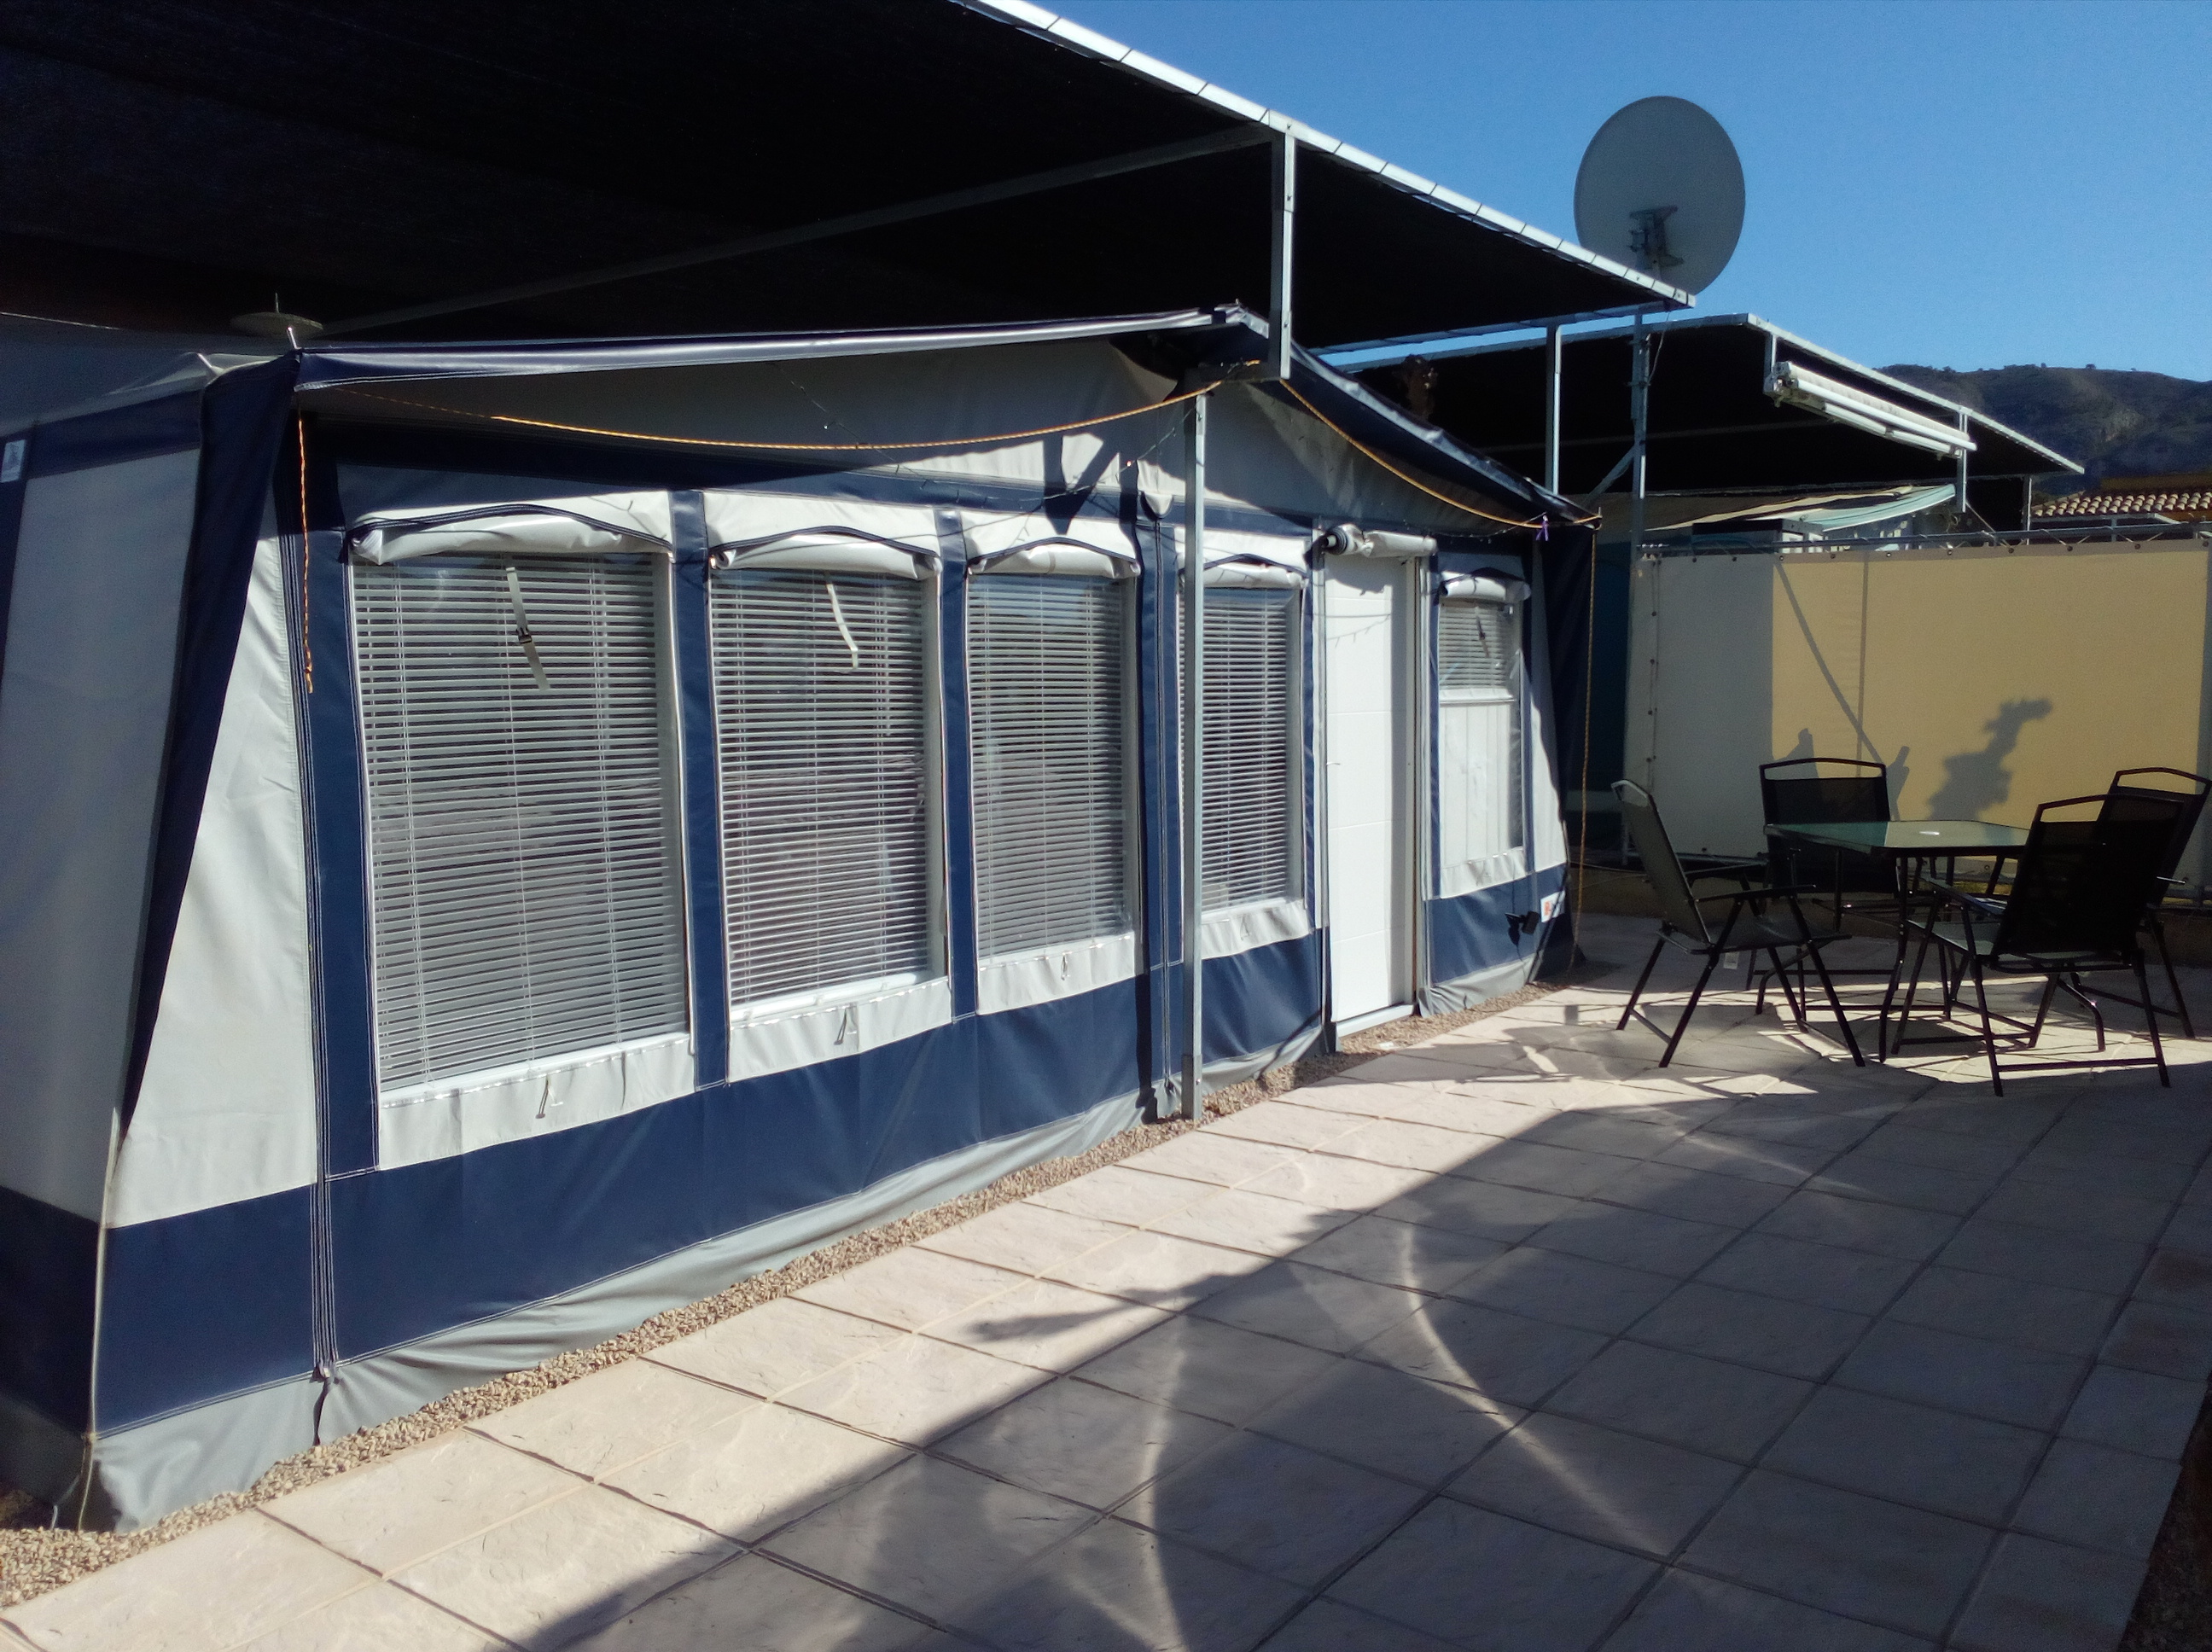 size sale used awning for retractable large full carports decks of fabric deck awnings